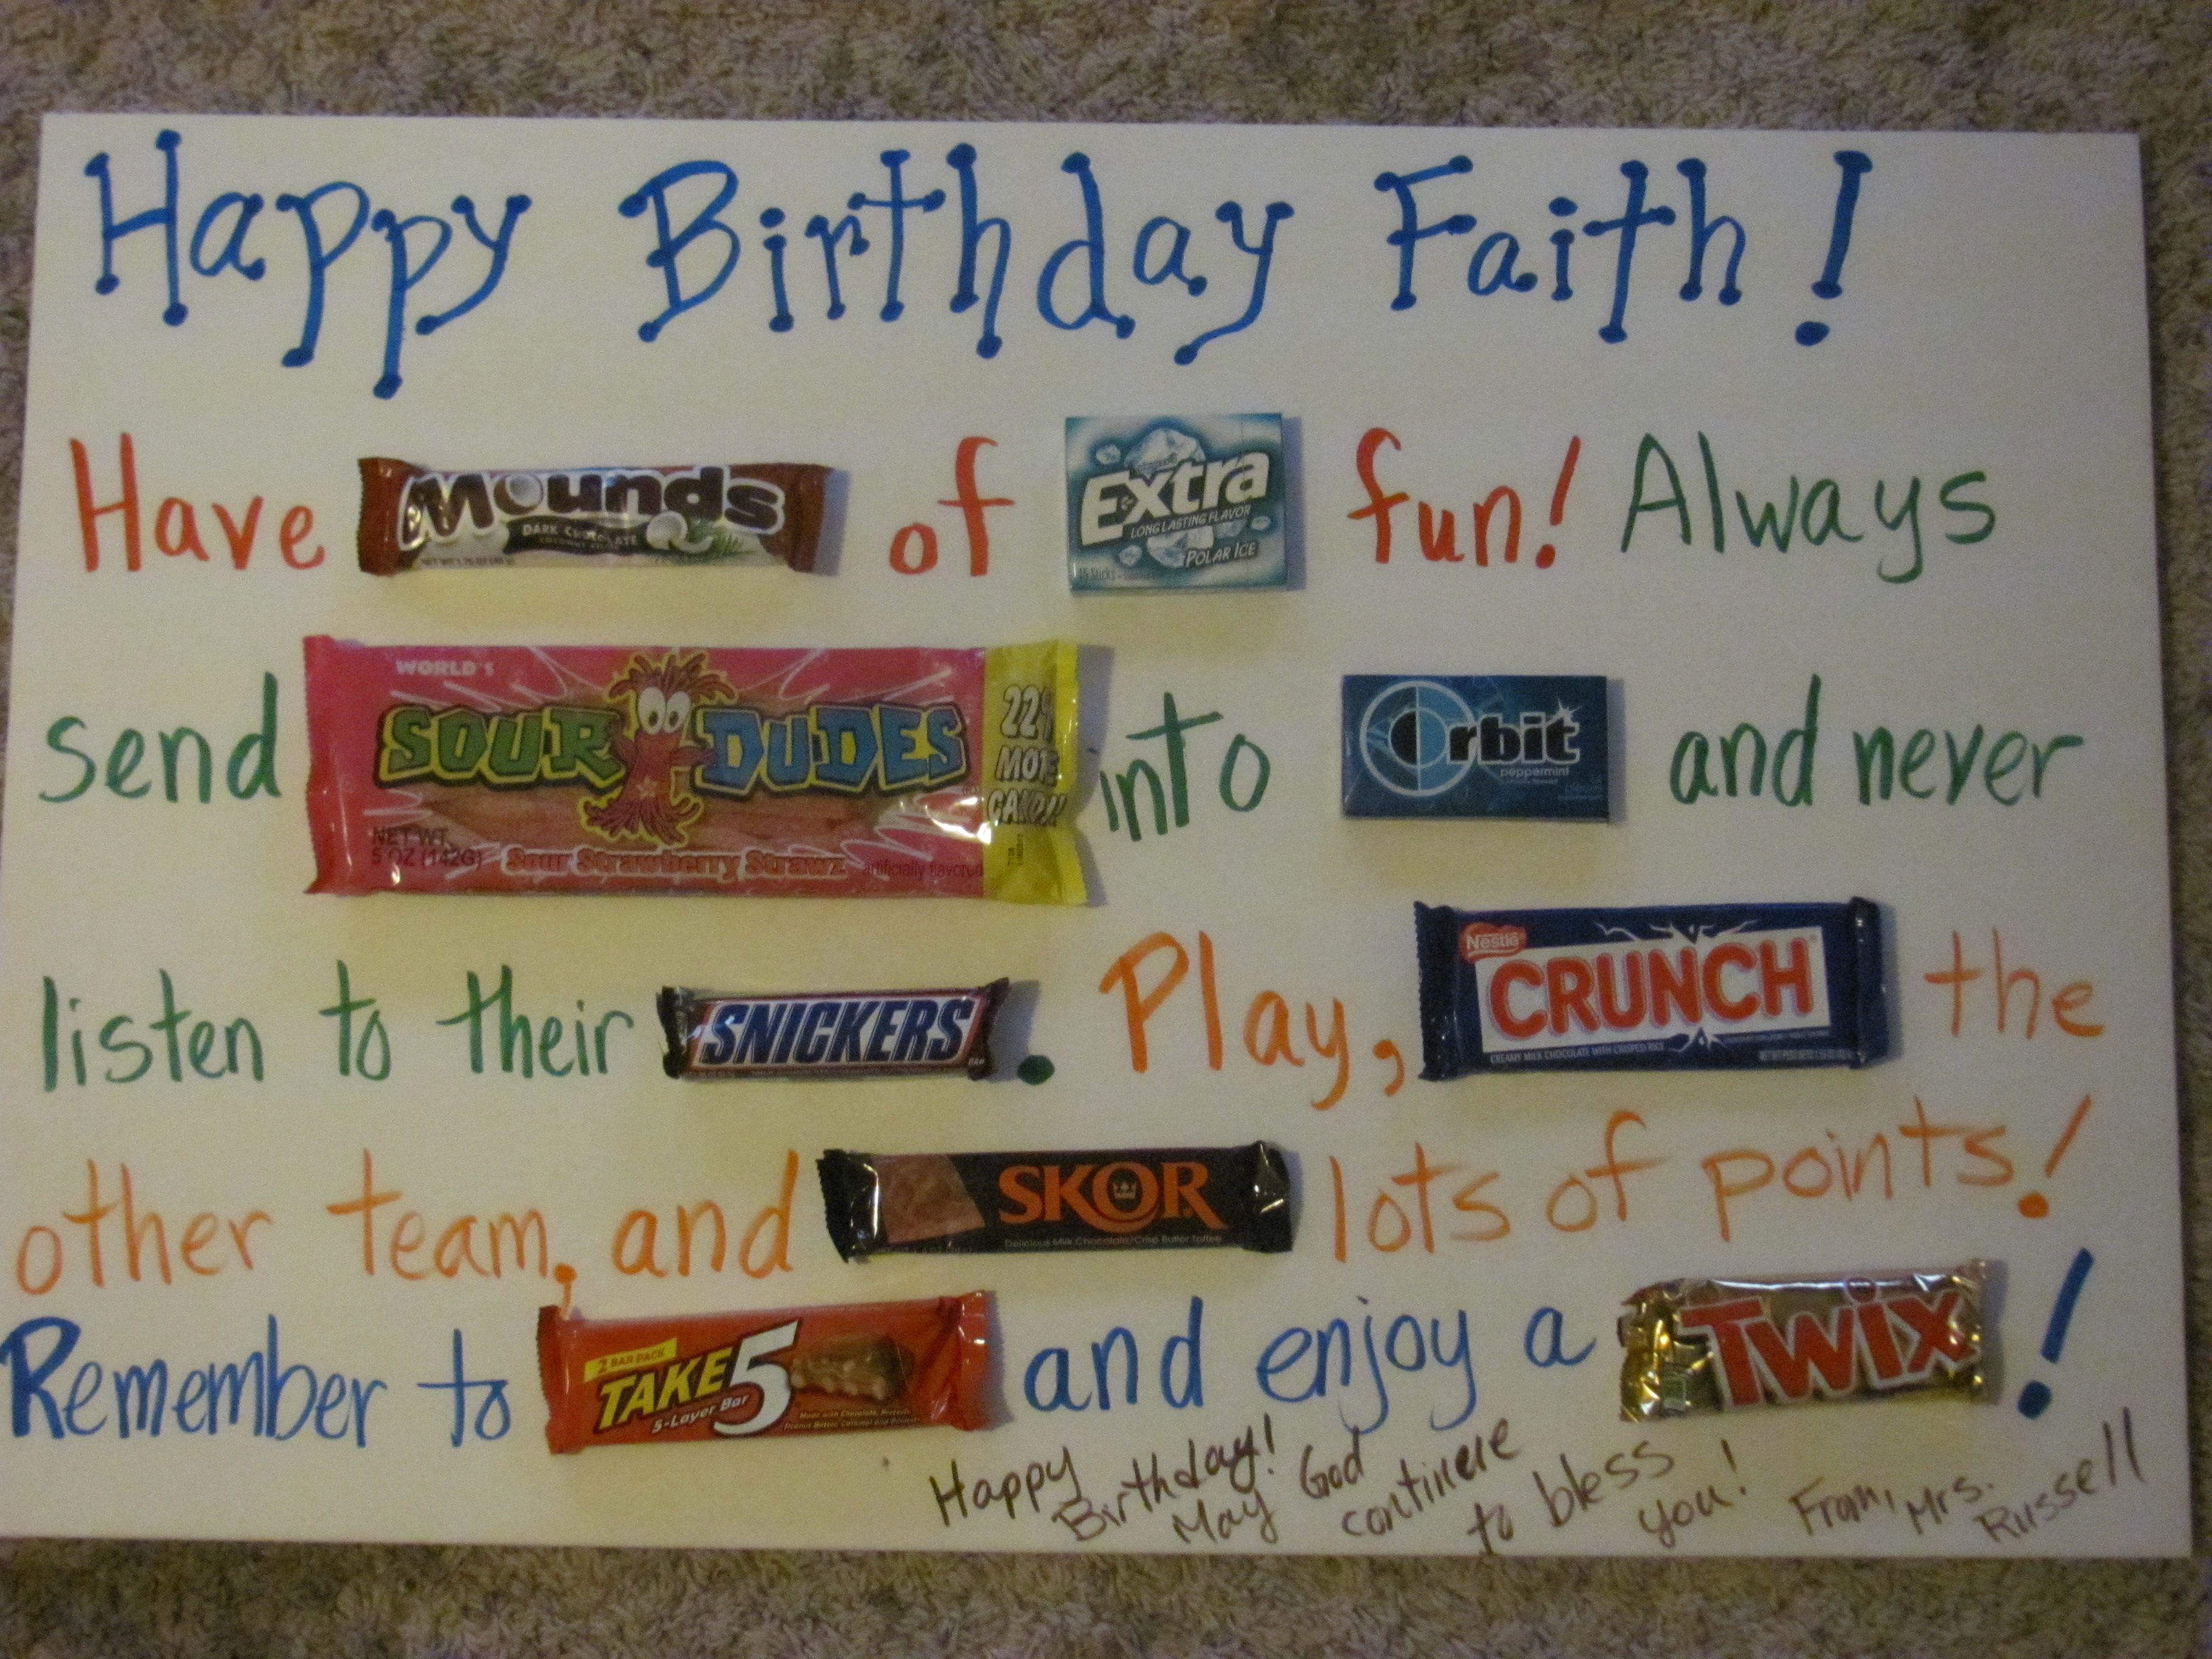 A Huge Birthday Card Made With A Foam Board And Candybars Glued On Birthday Cards Card Making Birthday Big Birthday Cards